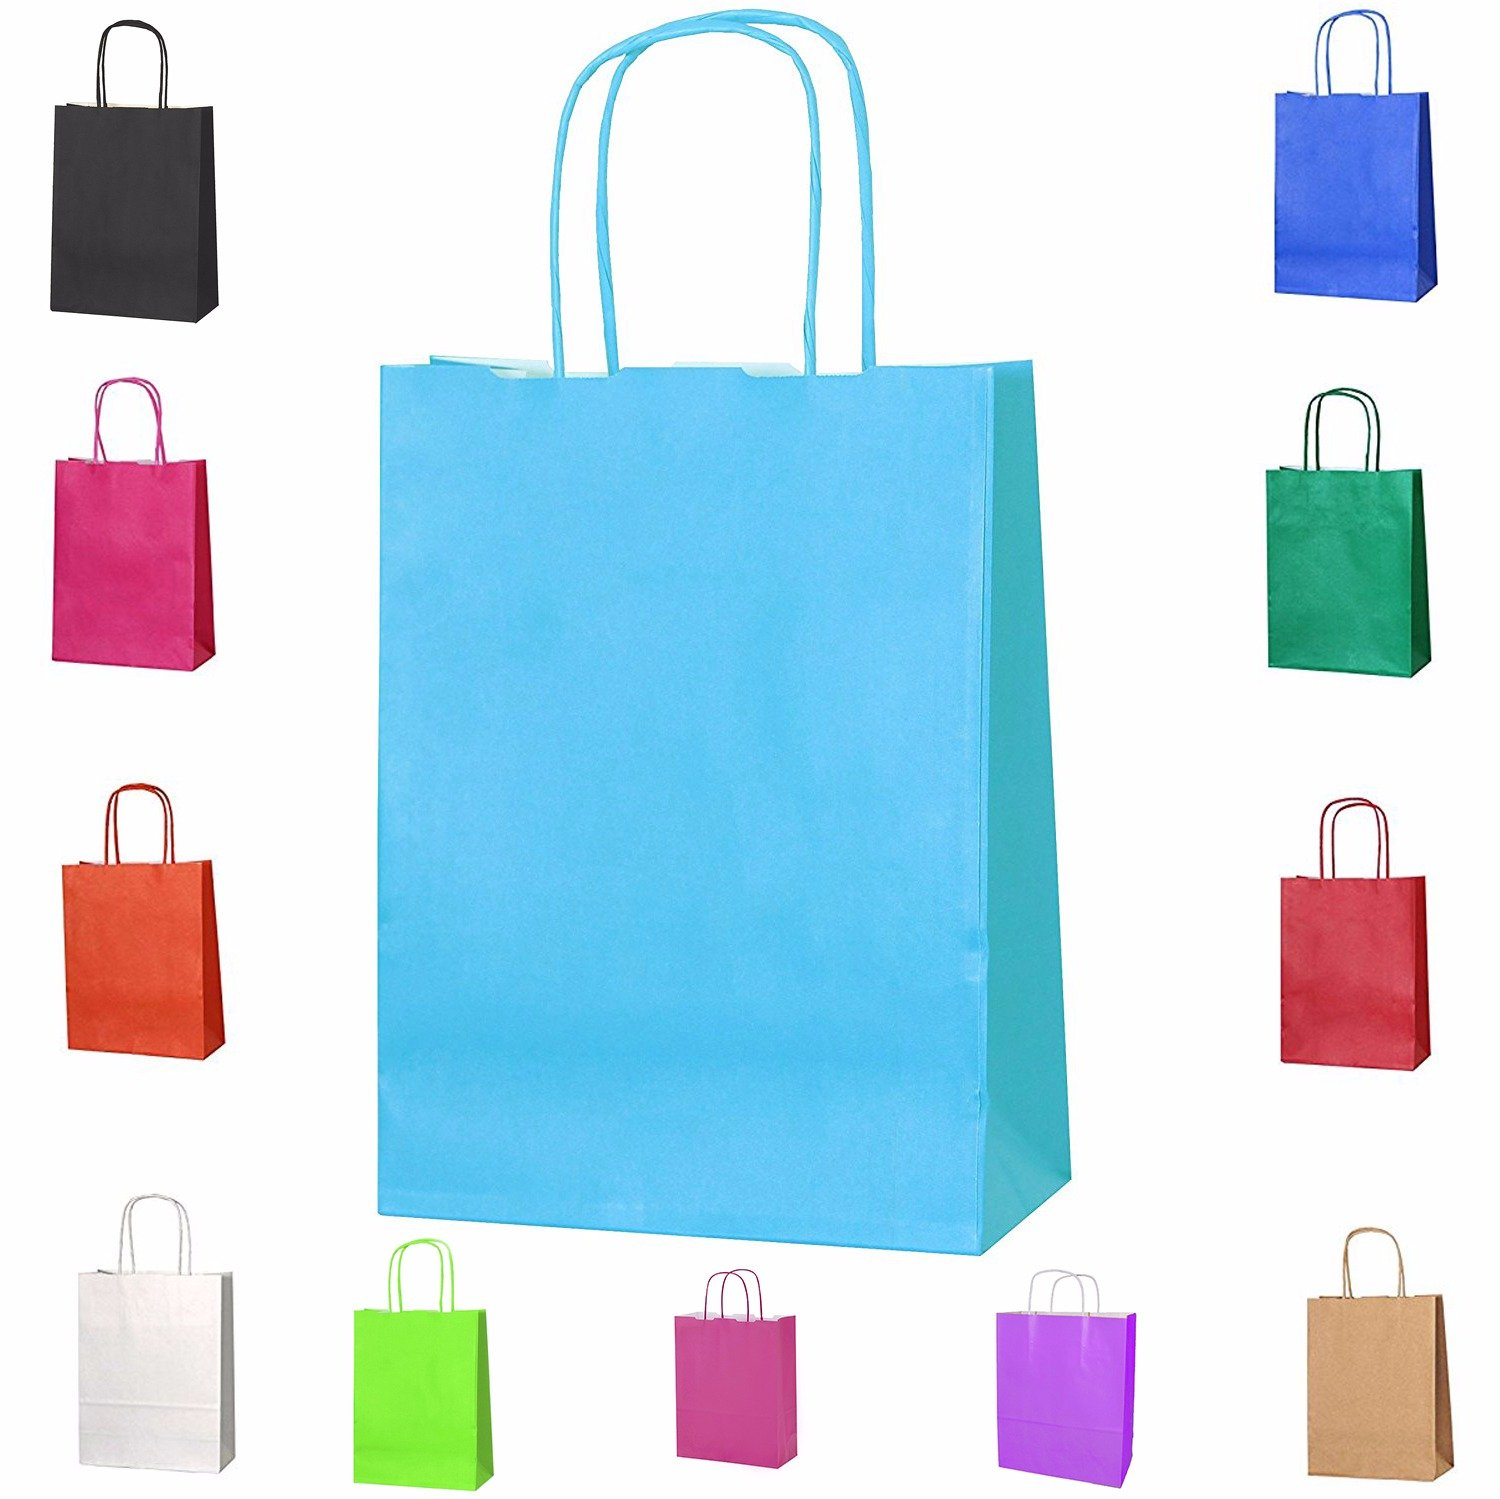 20 Brown SMALL L 31 Cm x W 24 Cm x D 11 Cm Twist Handle Paper Party Gift Bags Kraft Bags - 3 Sizes, Choose Your Colour and Size Smith